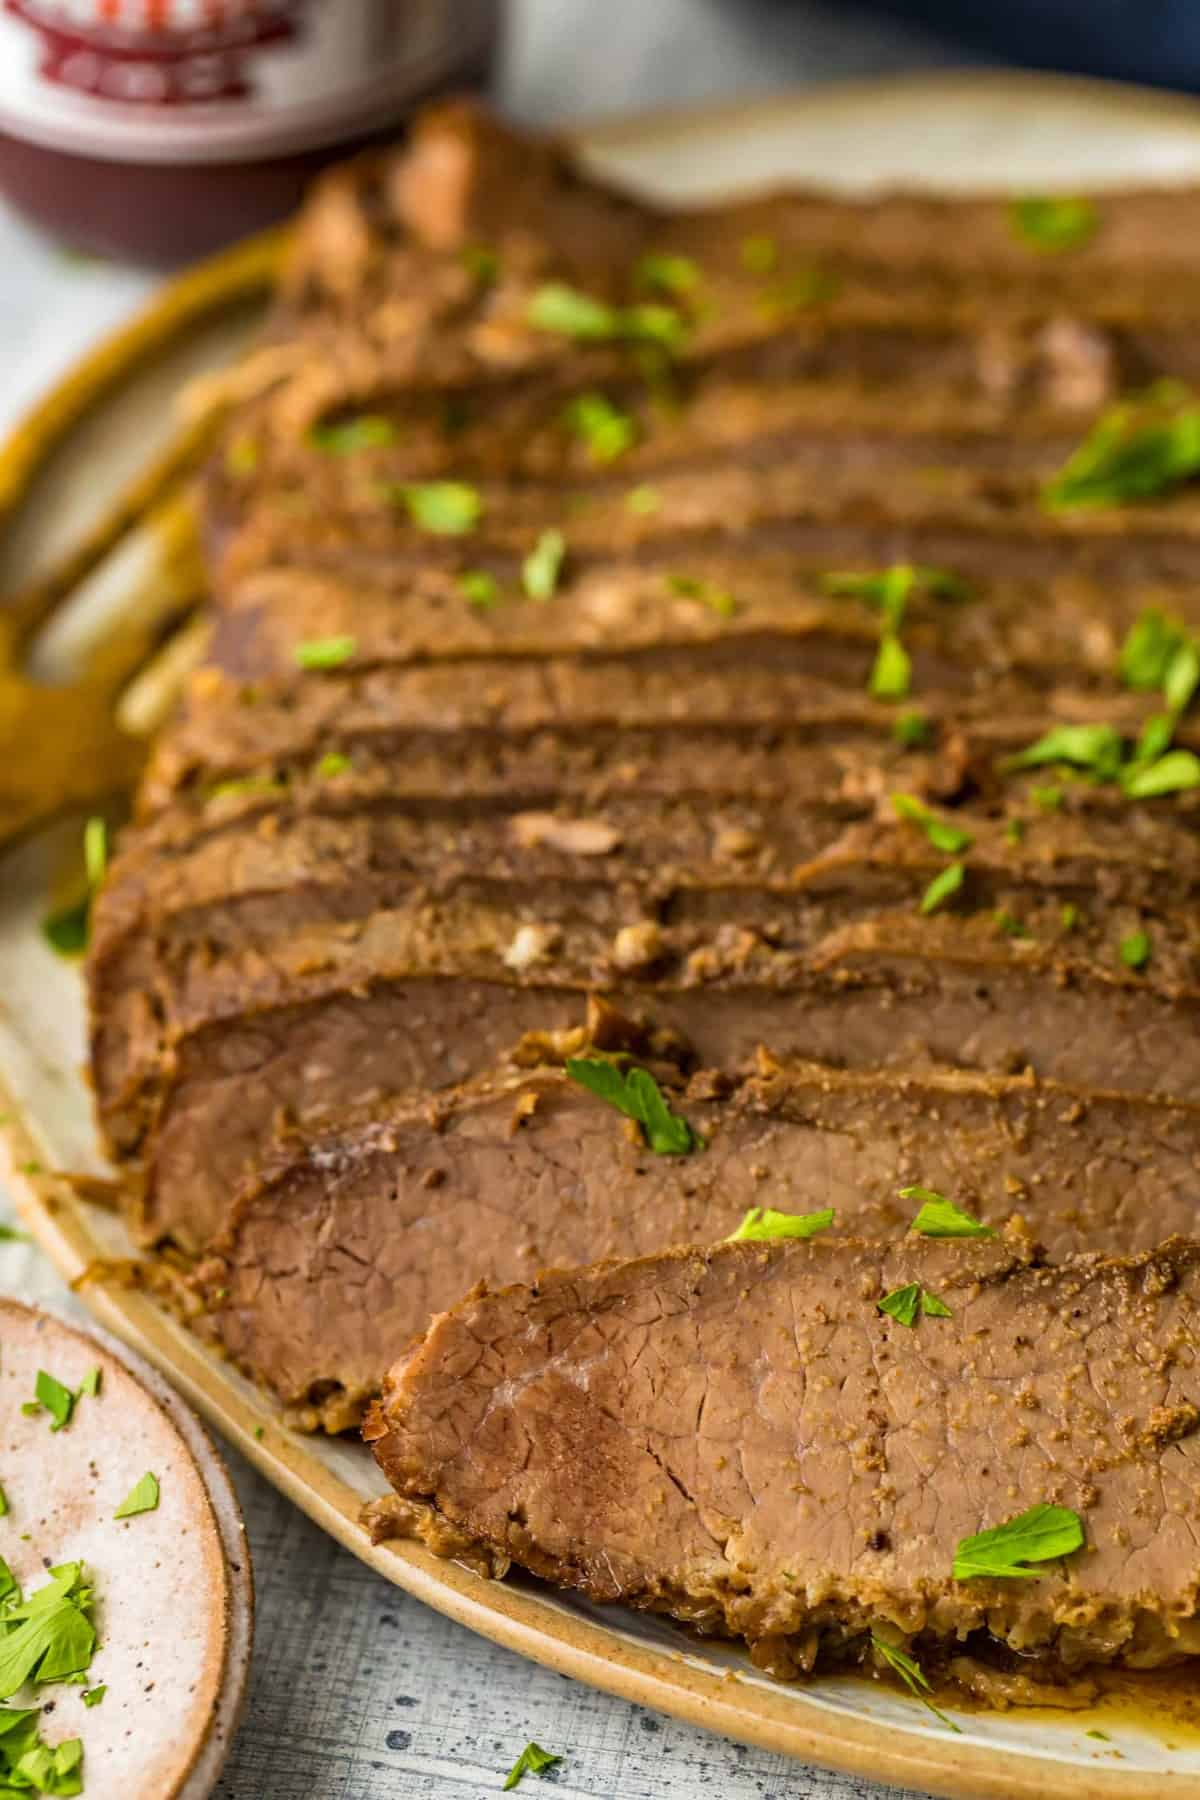 Slices of beef garnished with herbs